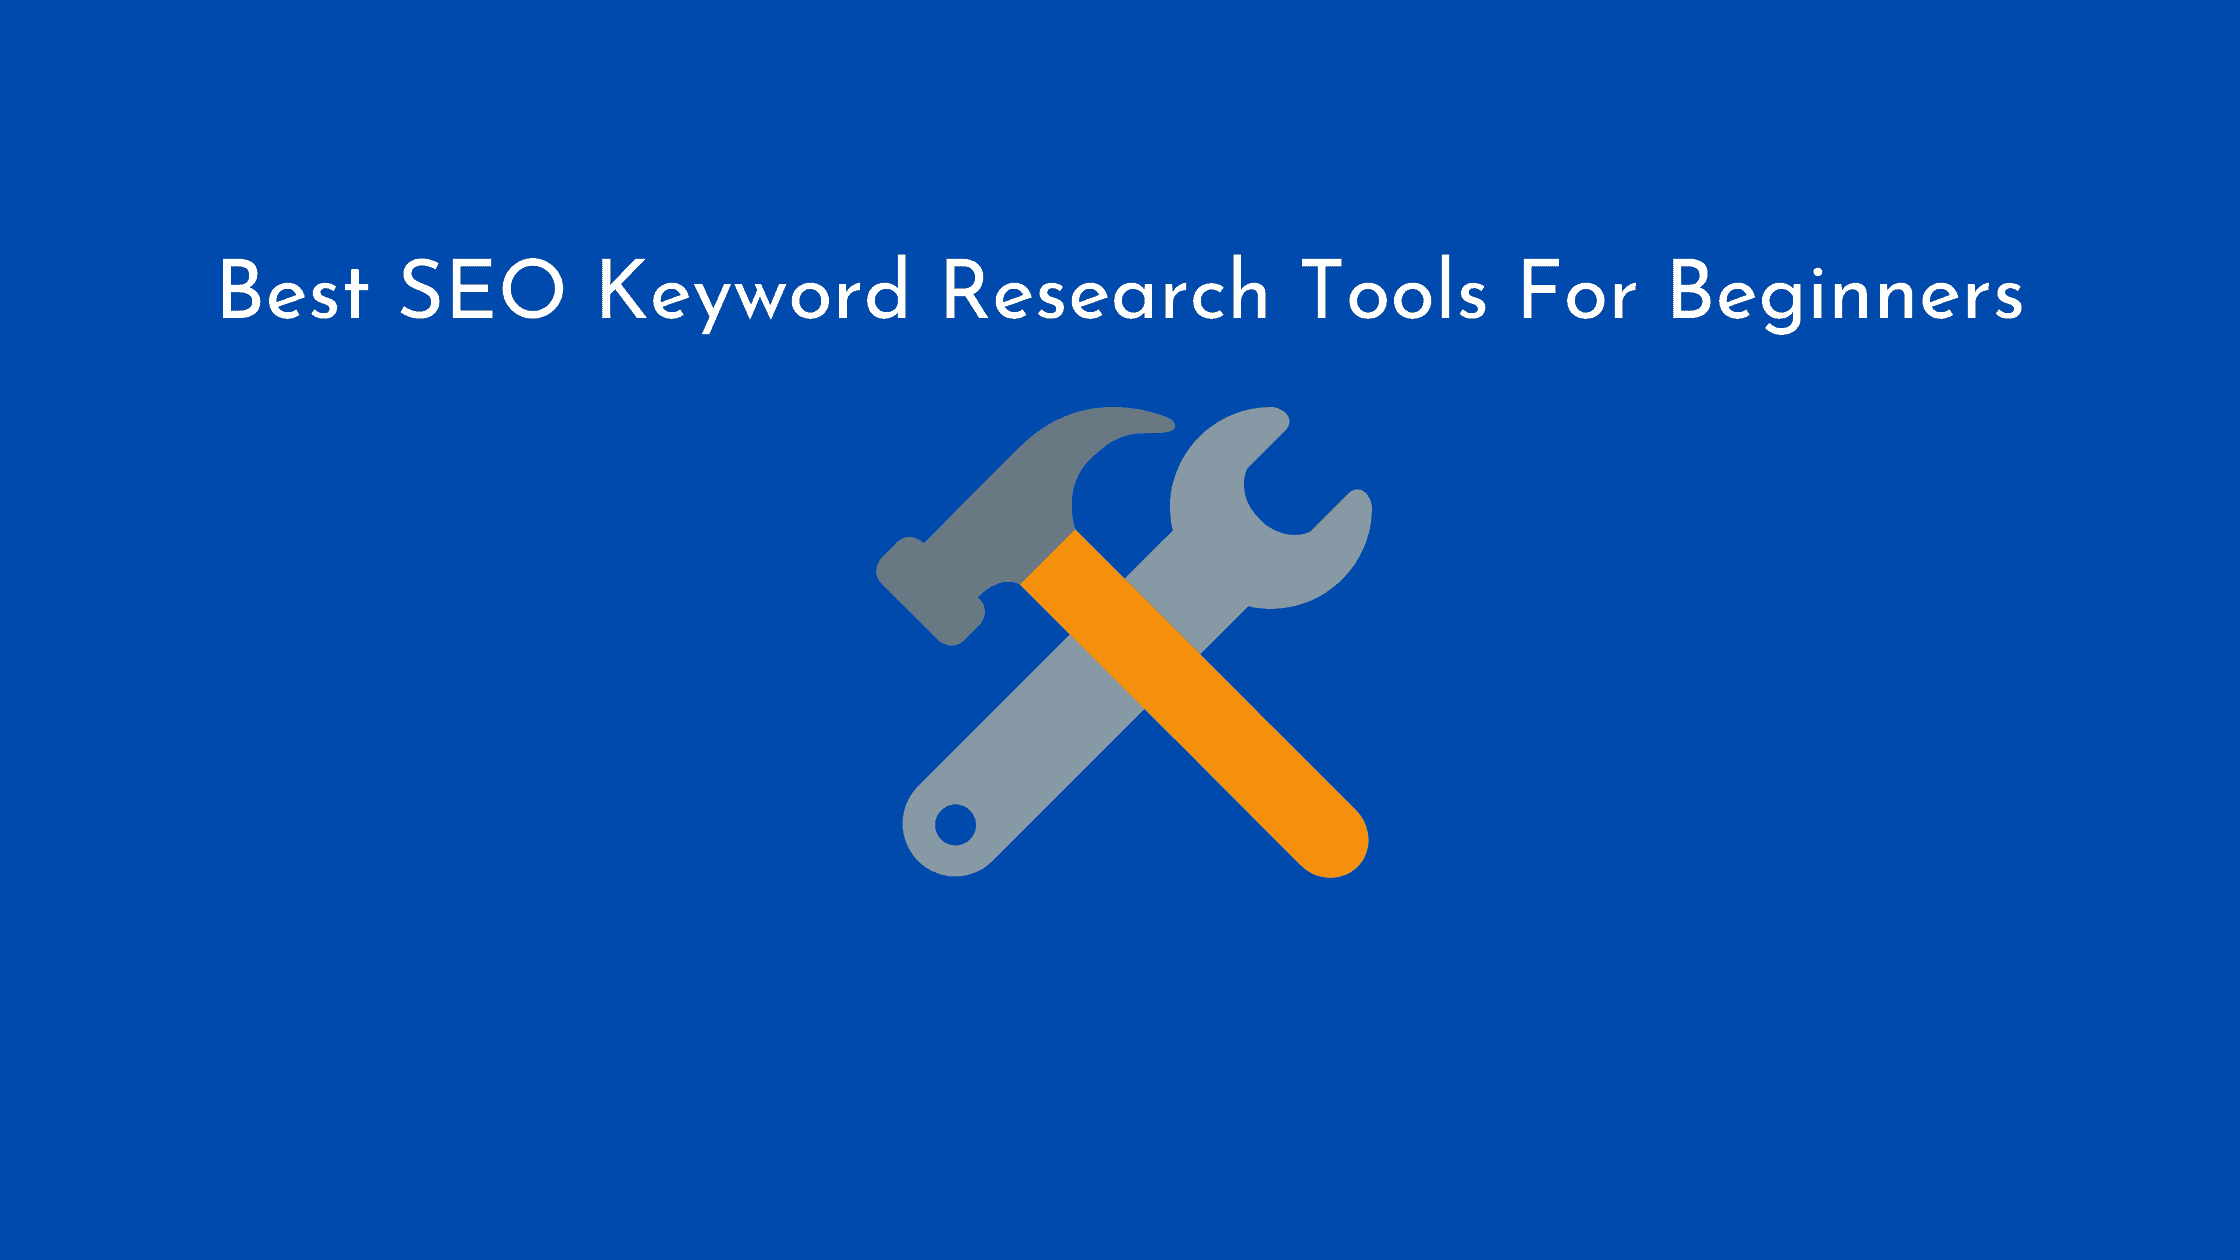 Best SEO keyword research tools for beginners